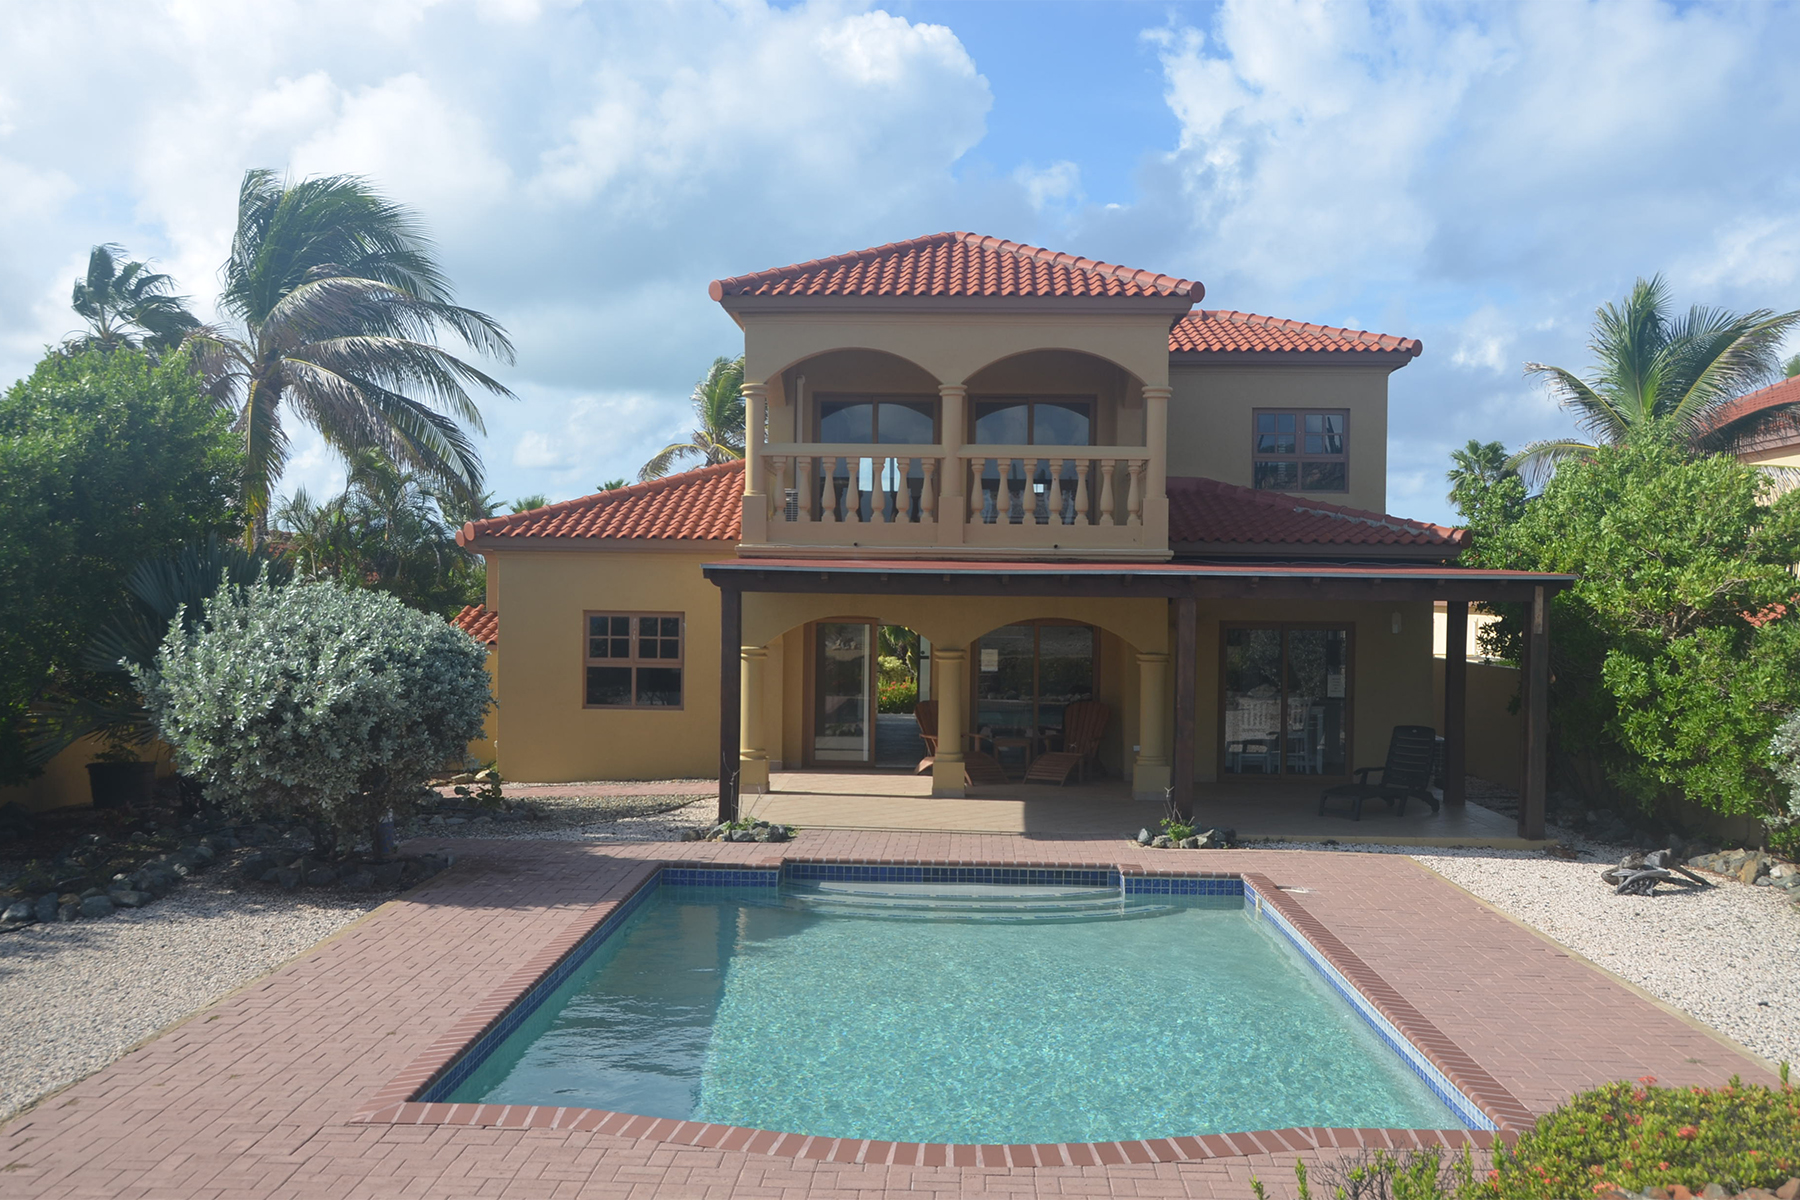 Single Family Home for Sale at Mesa Vista 11 Other Aruba, Aruba